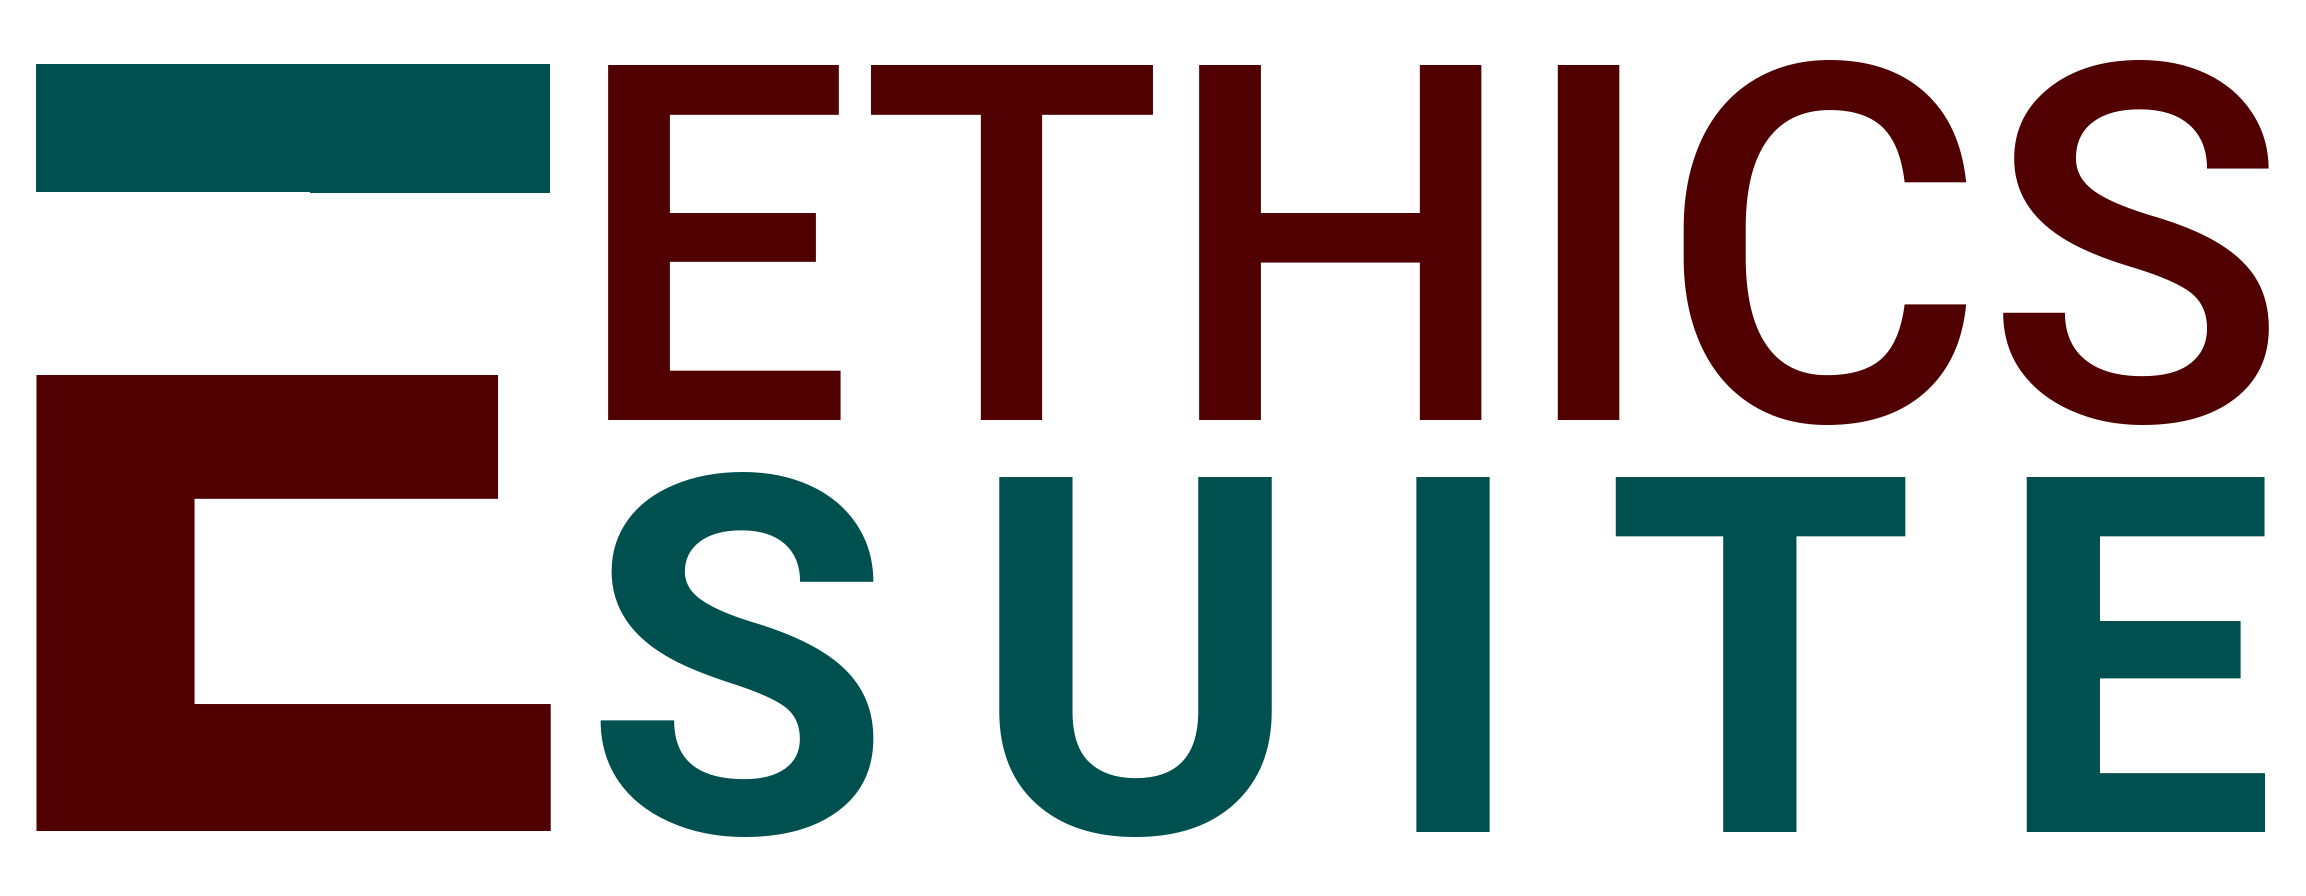 Transparent prices ethical. Ethicssuite com see a